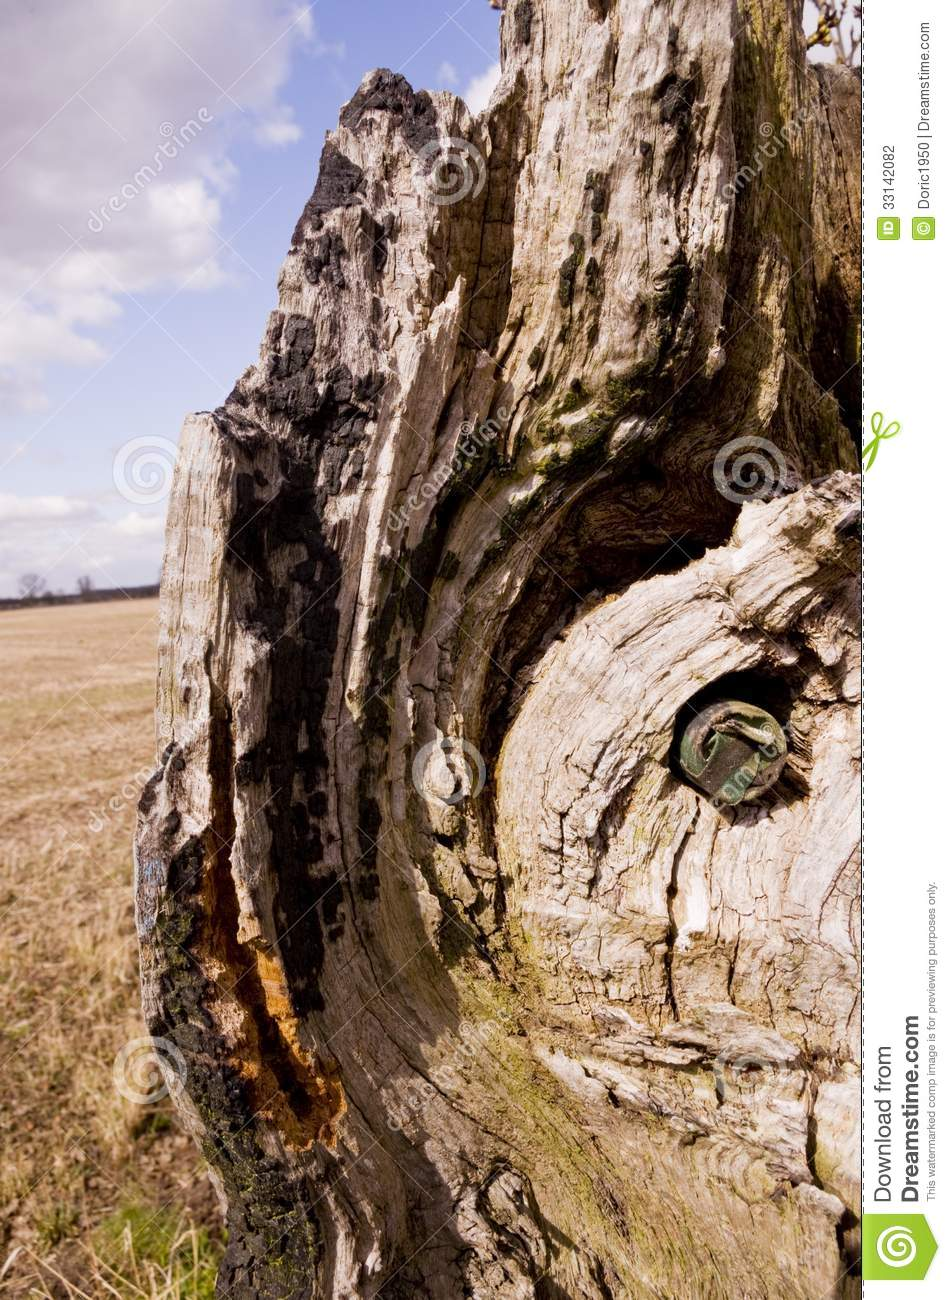 look good shoes sale new lower prices thoughts on Camouflage Geocache Hidden In A Tree Stock Photo - Image of ...